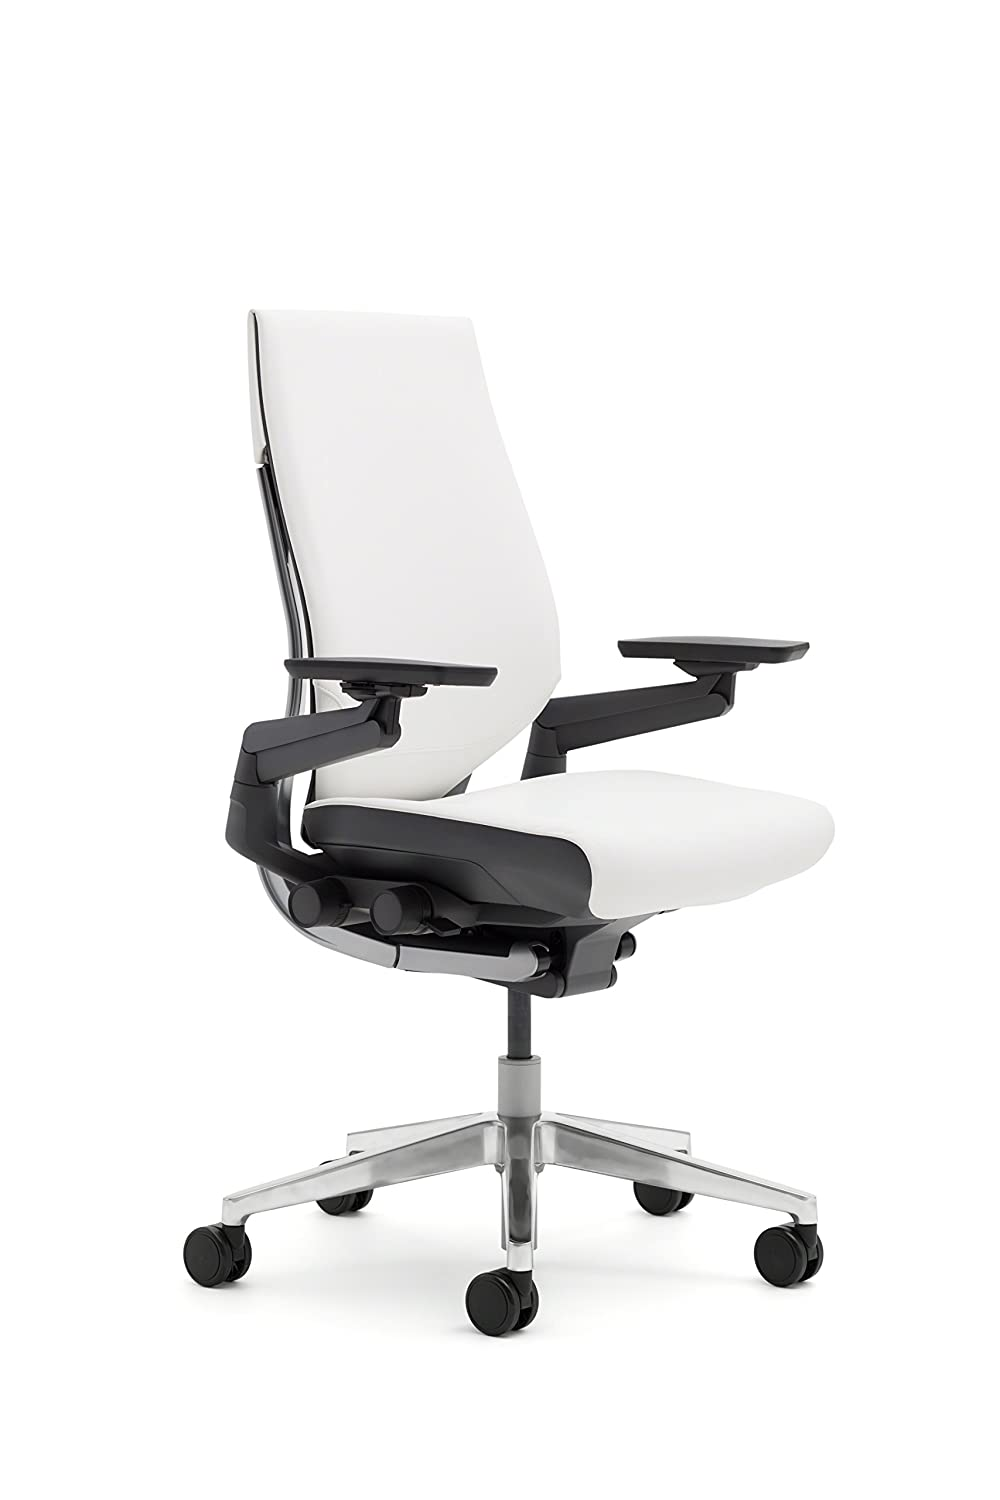 Amazon.com: Steelcase Gesture Chair, Coconut: Kitchen & Dining